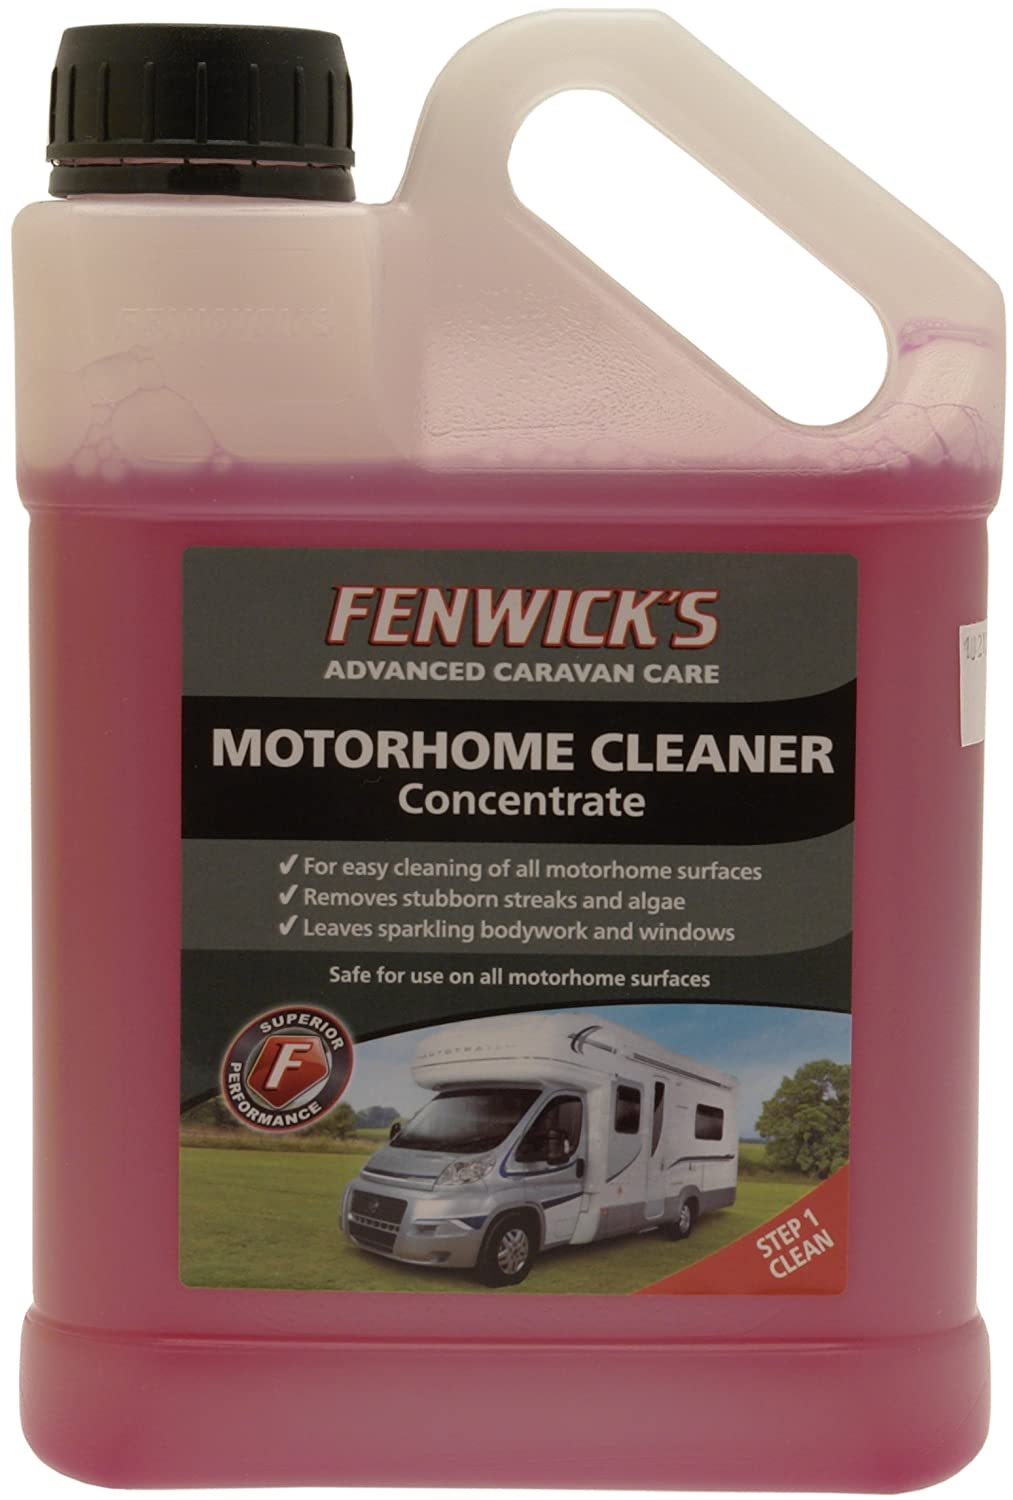 Fenwicks Motorhome Cleaner - Transparent, 1 Litres 304